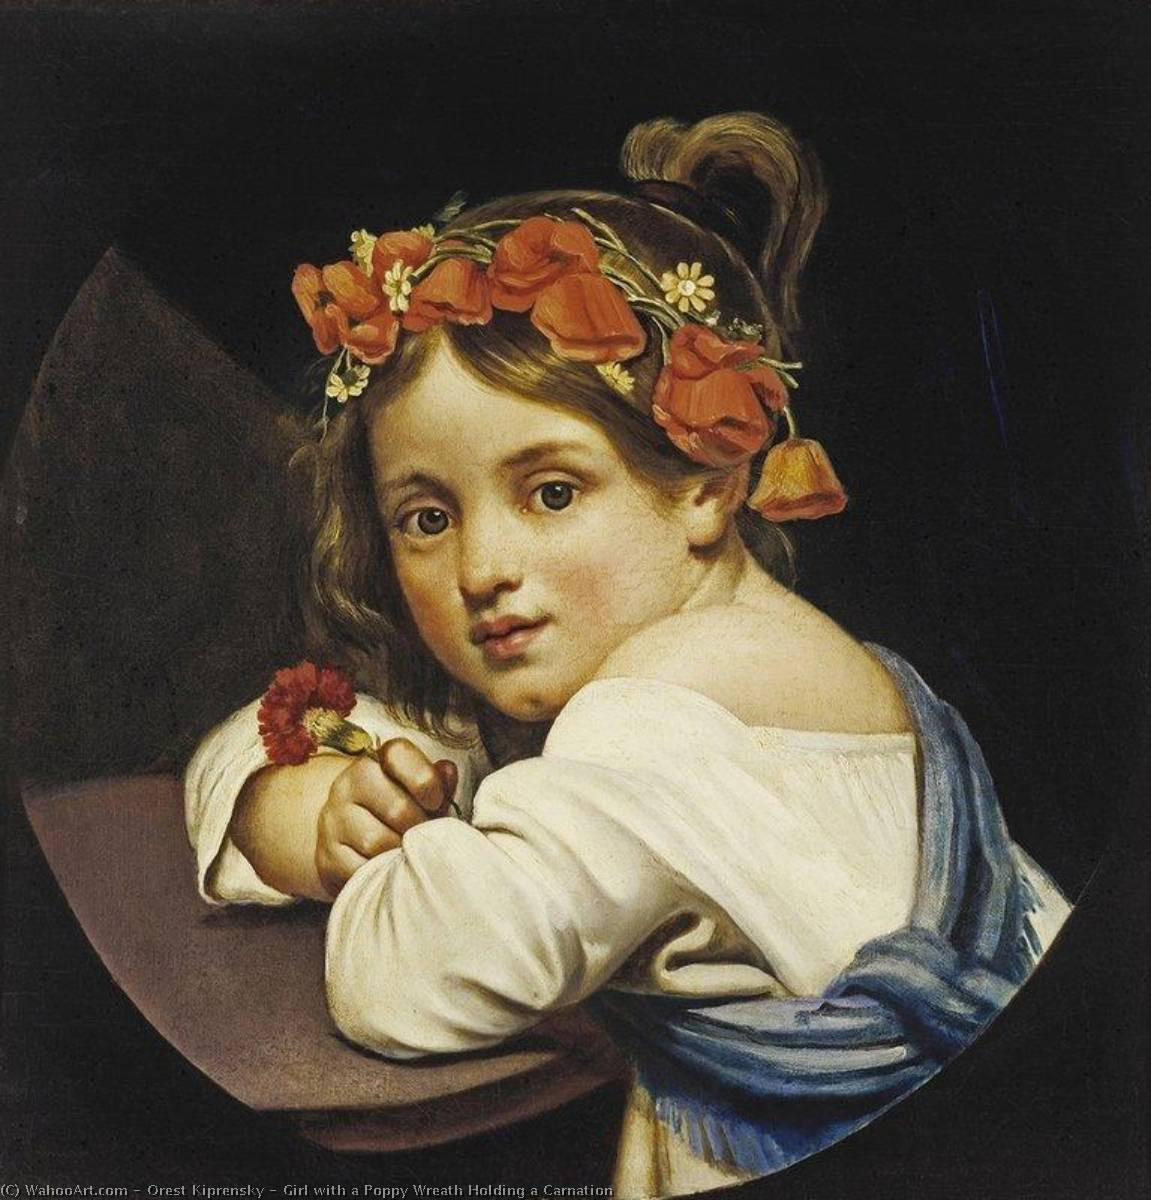 famous painting Girl with a Poppy Wreath Holding a Carnation of Orest Adamovich Kiprensky